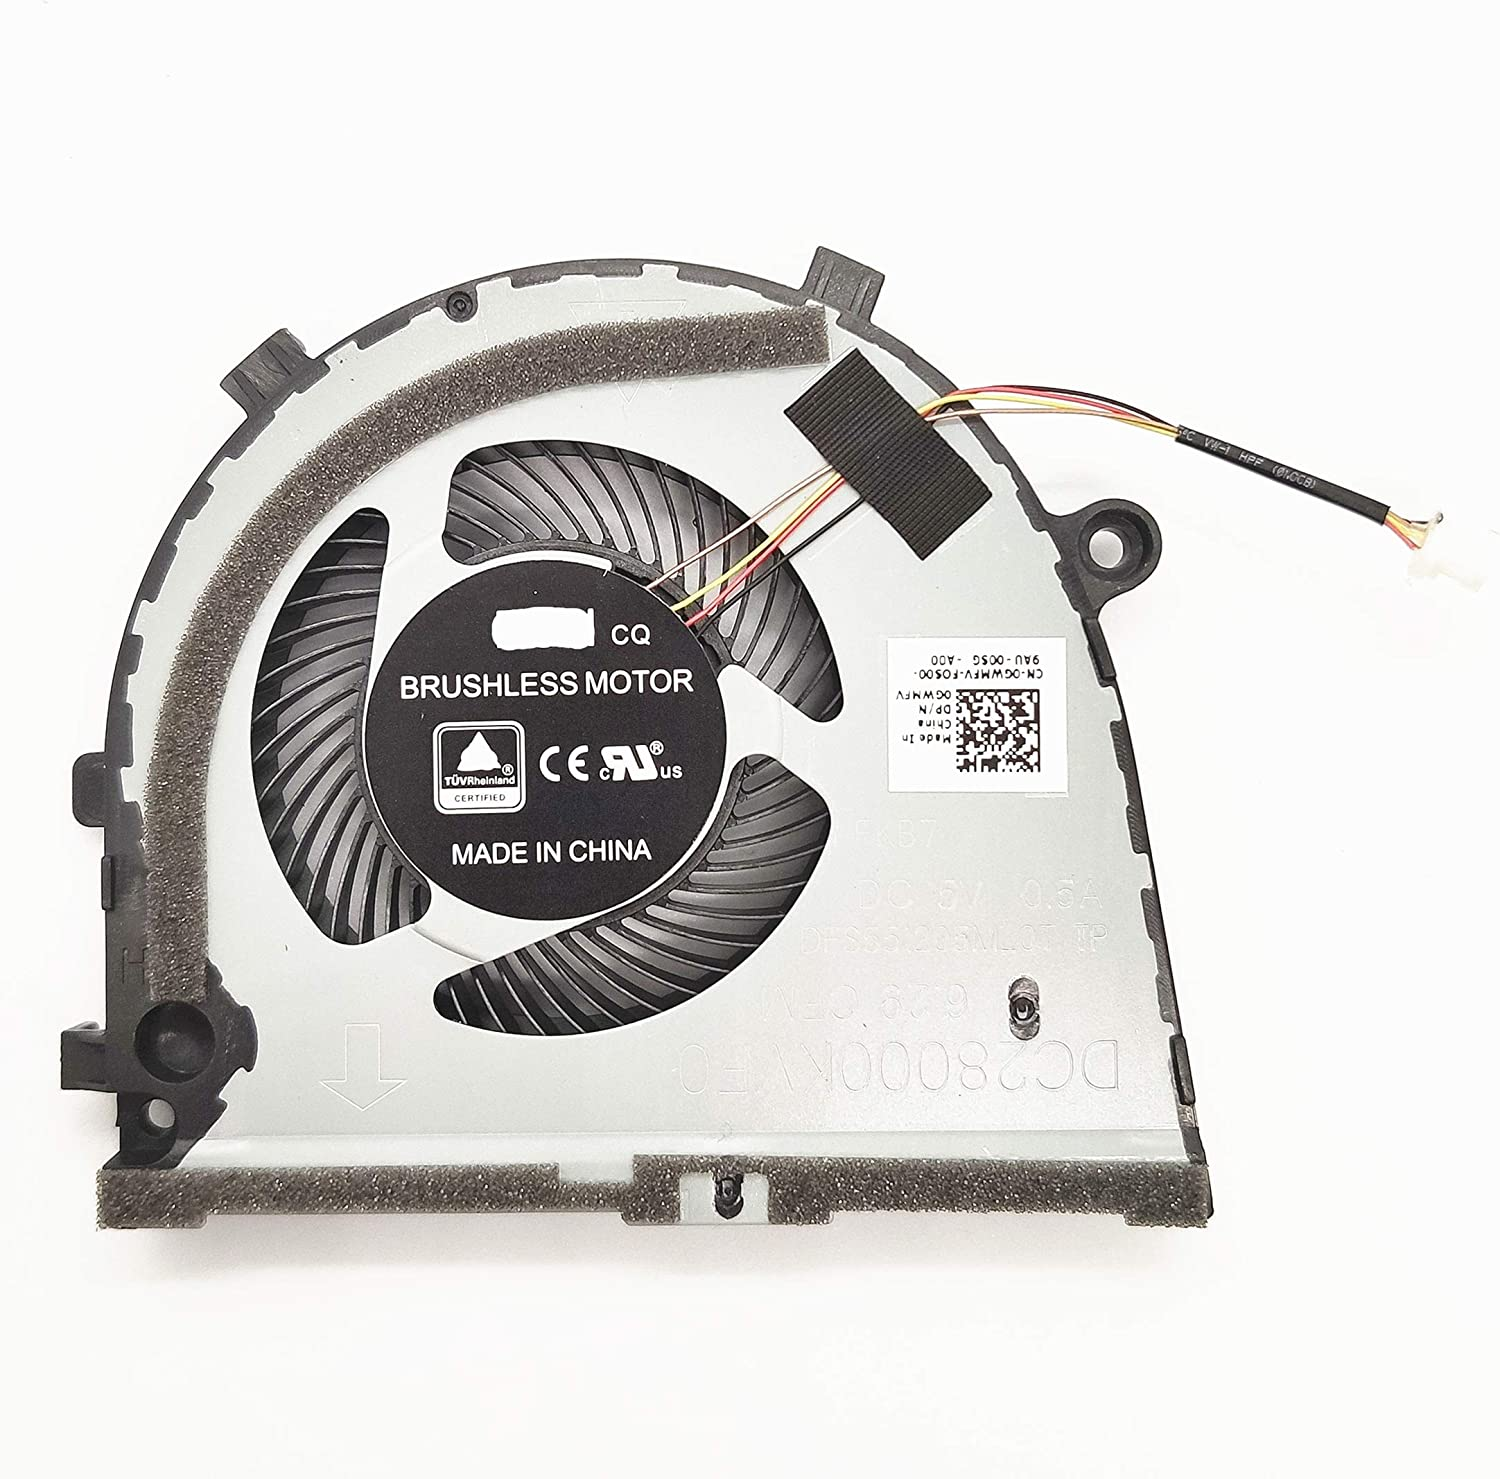 Lee_Store Replacement New GPU Cooling Fan for DELL inspiron Game G3 G3-3771 G3-3579 G5 15 5587 Series GPU Fan 0GWMFV FKB7 5V 0.5A DFS551205MLOT TP DC28000KVF0